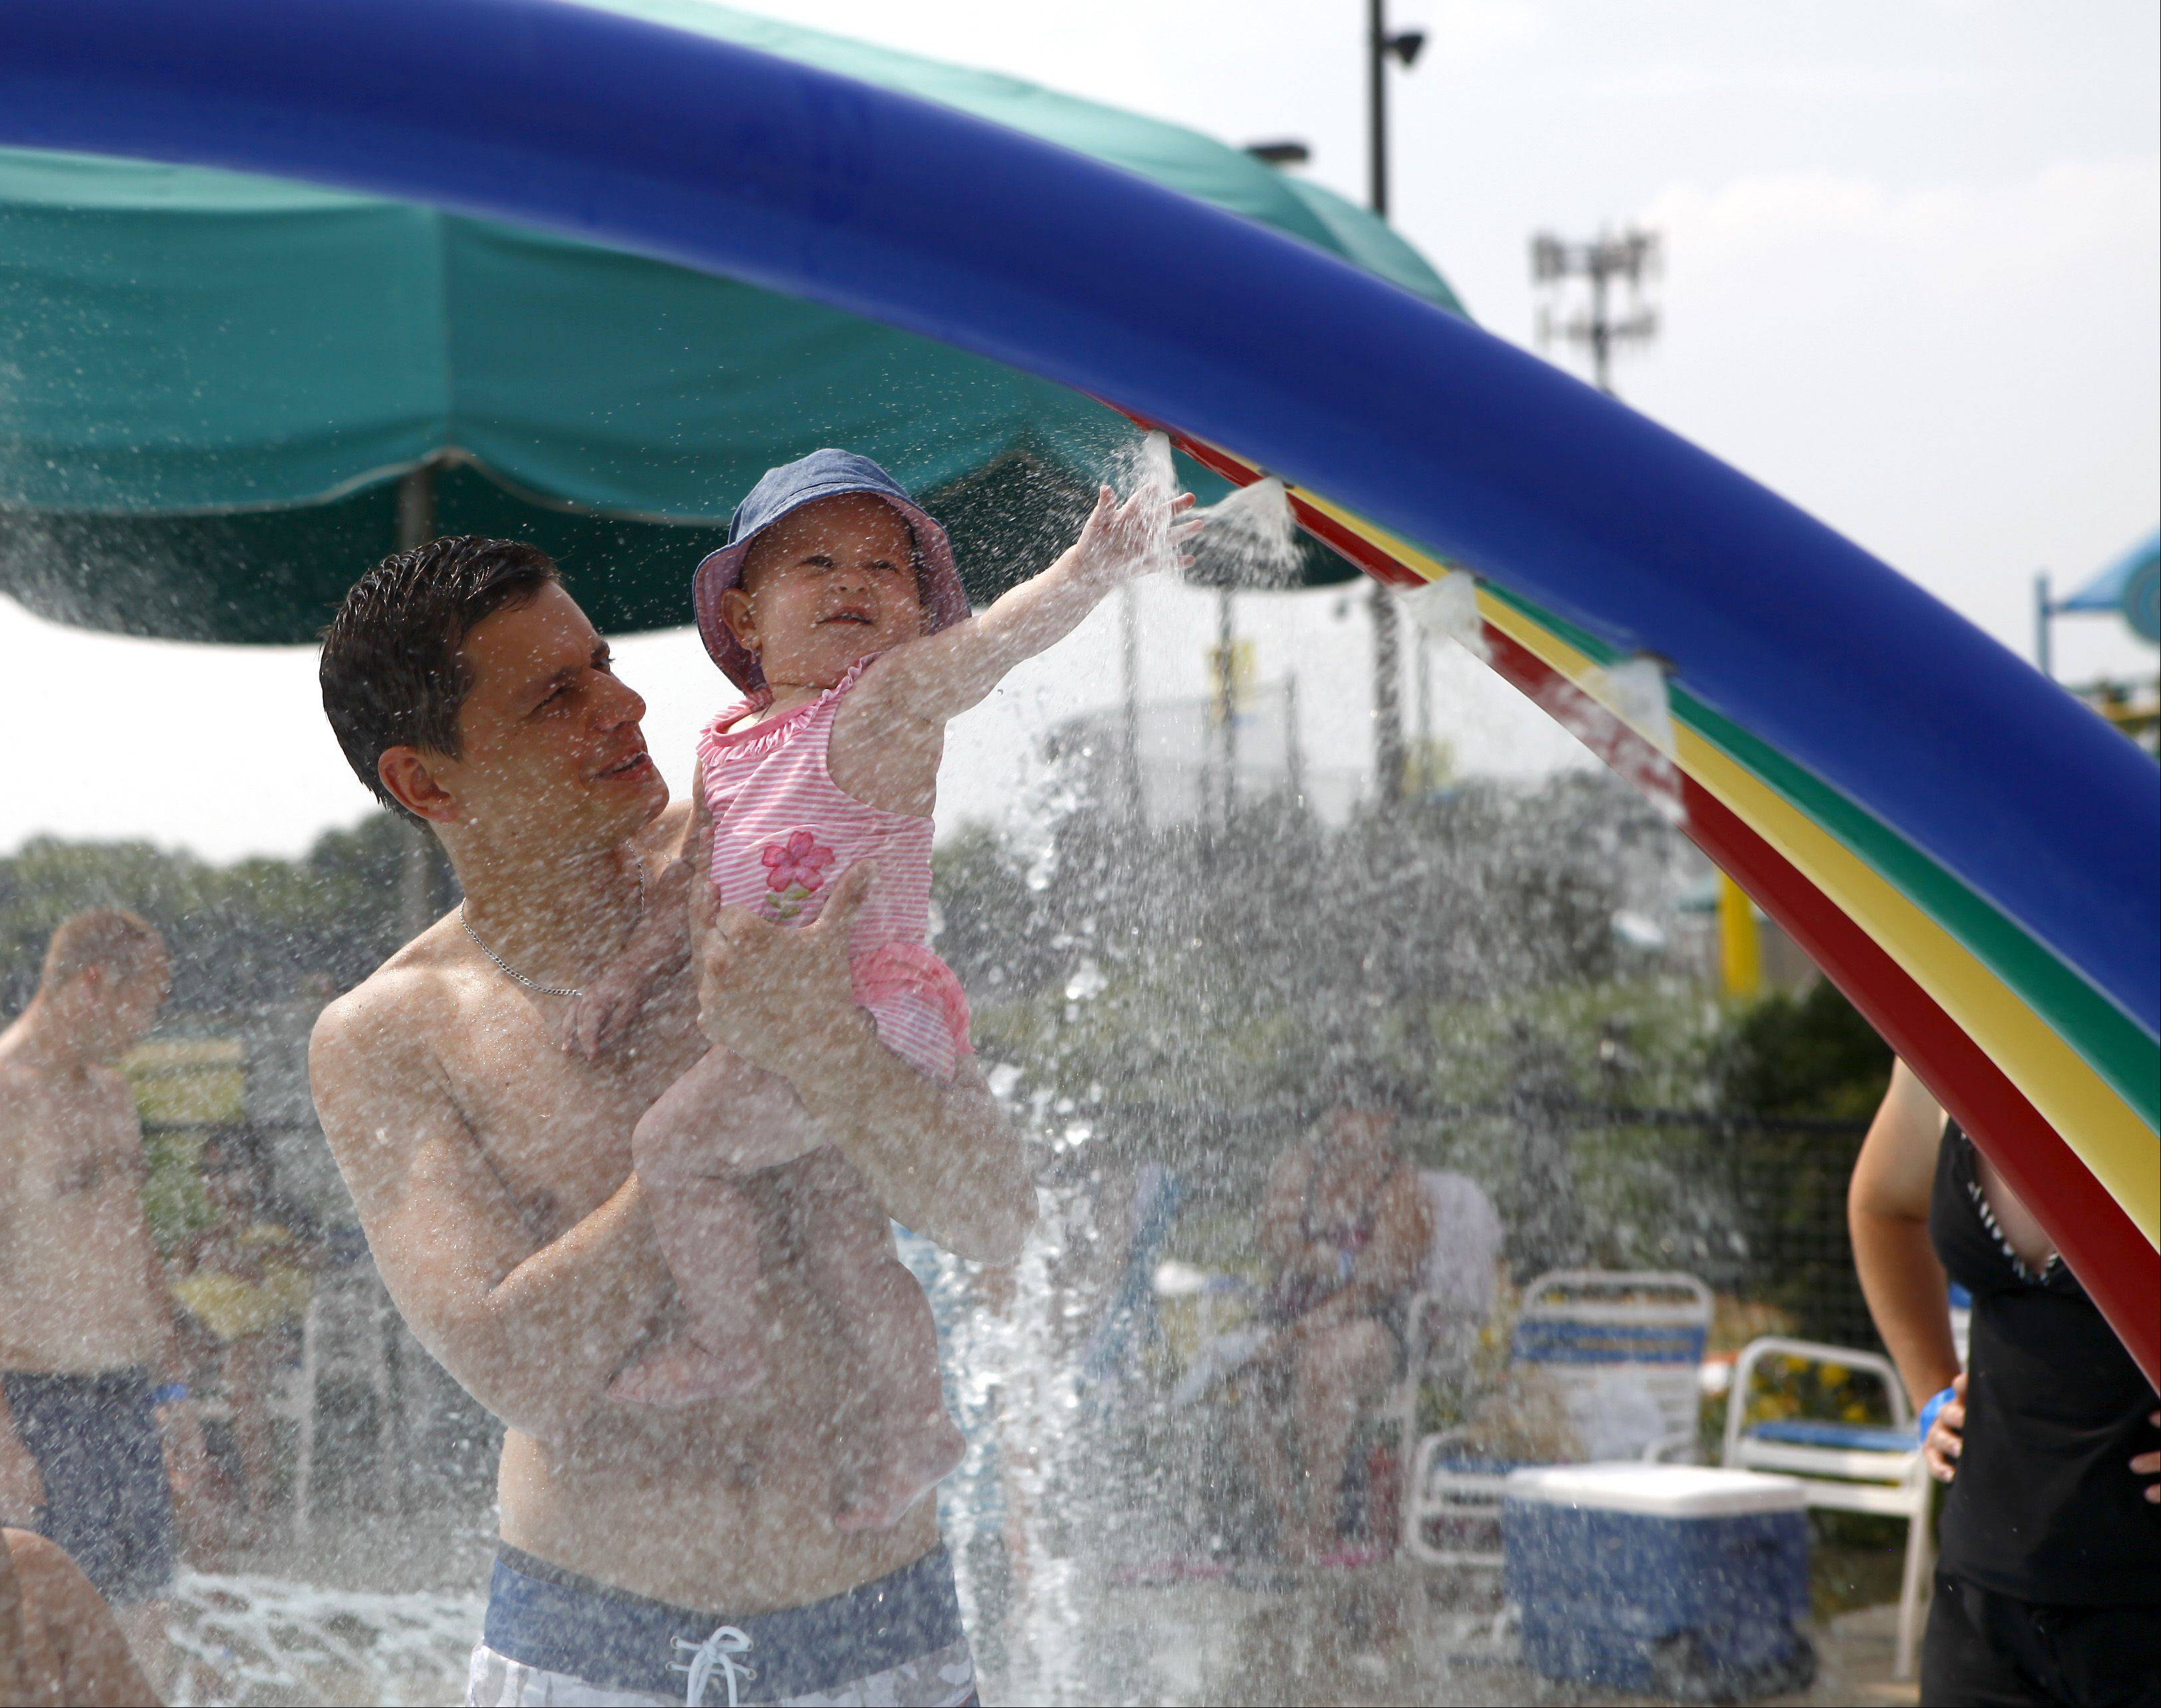 Arthur Panek, from Des Plaines, plays with his daughter Maya, 10 months, in one of the many water features at Rainbow Falls Water Park on Sunday.